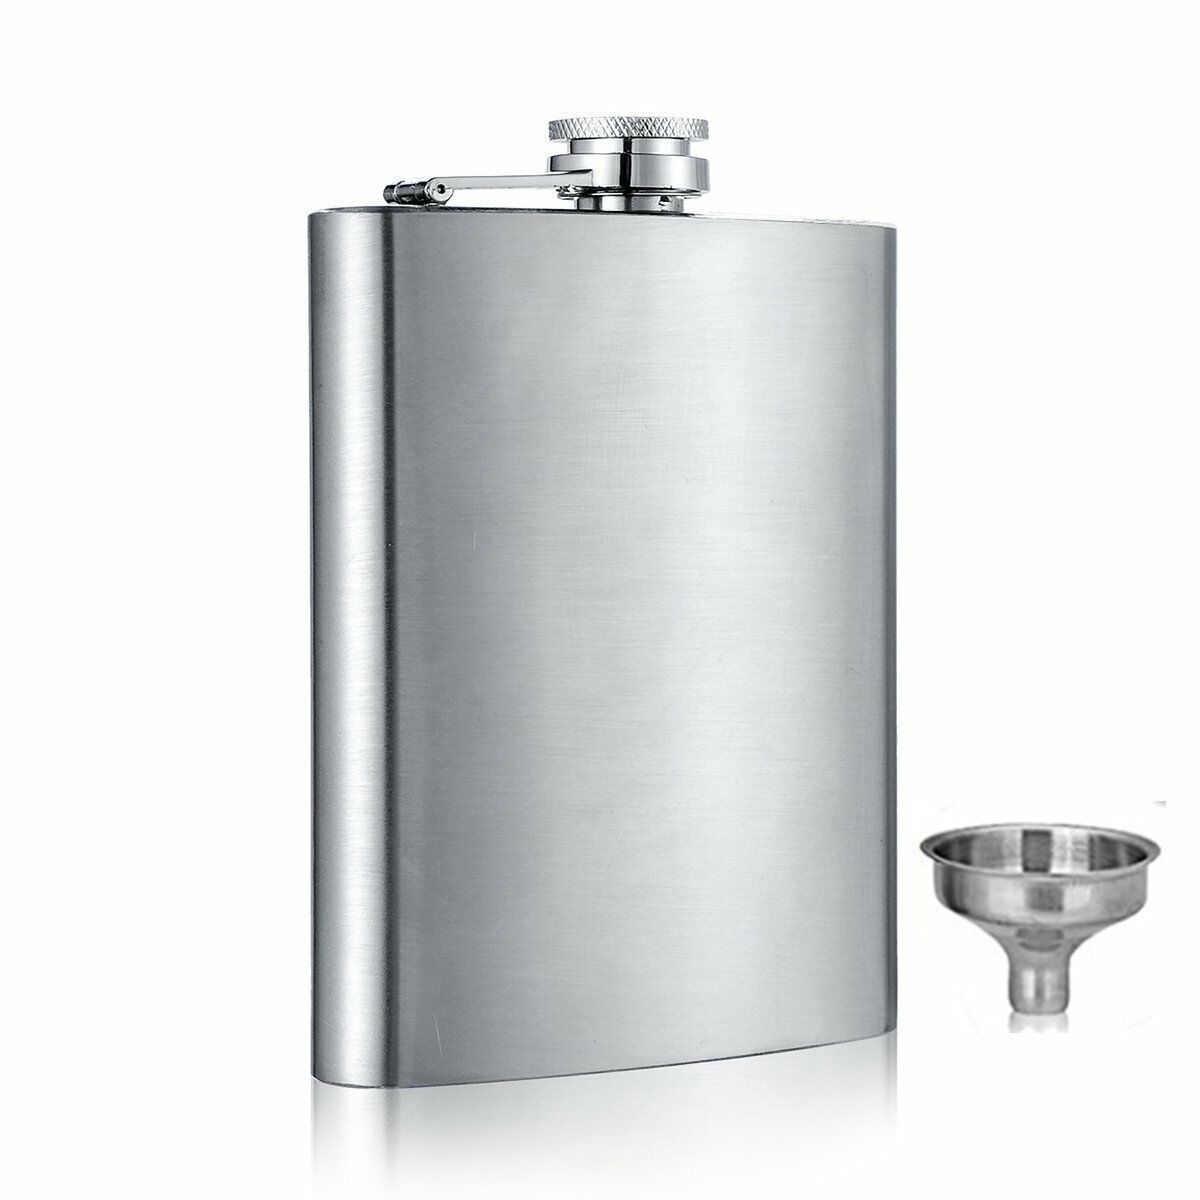 6 8 10 oz Liquor Stainless Steel Pocket Hip Flask Screw Cap with Funnel Bar Tools & Accessories